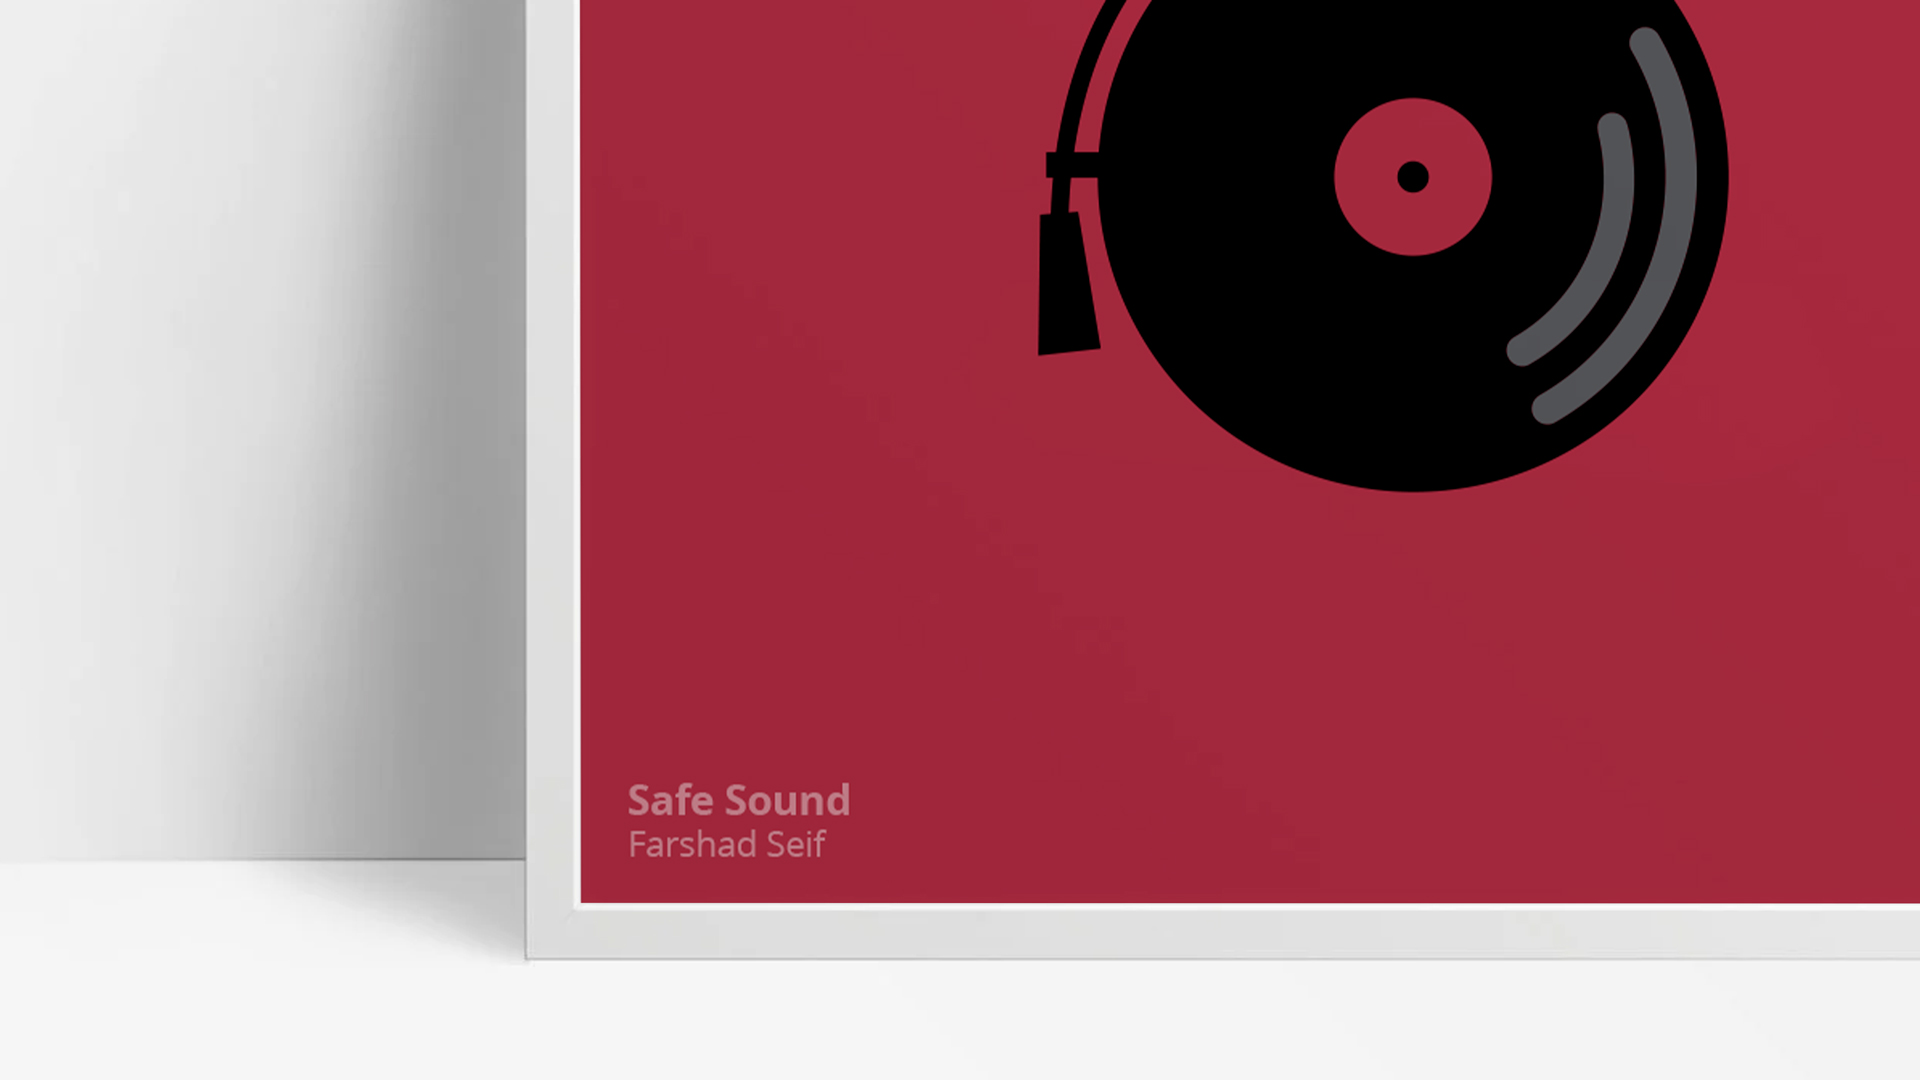 safe-sound-artwork-red-2